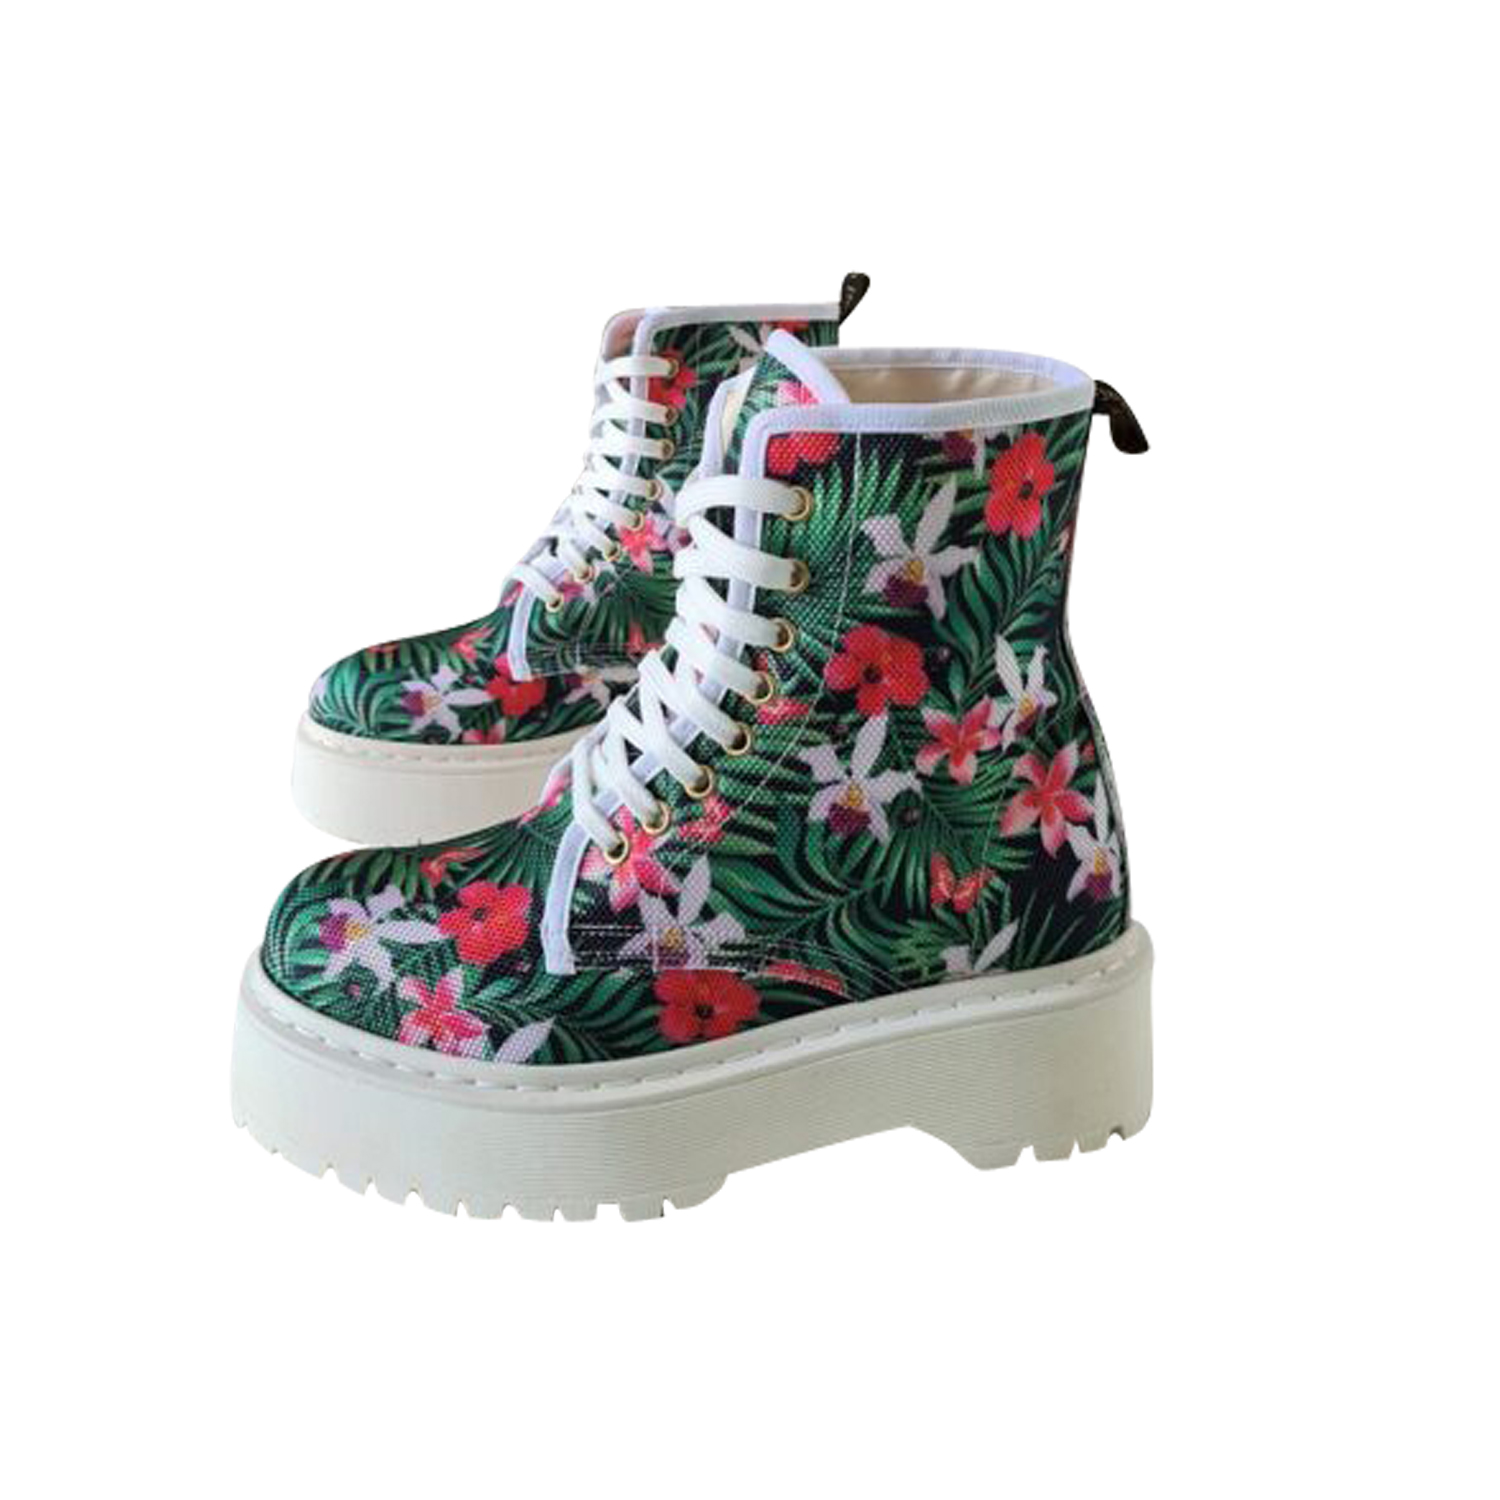 JAMMERS LONDON OXFORD FIORE VERDE